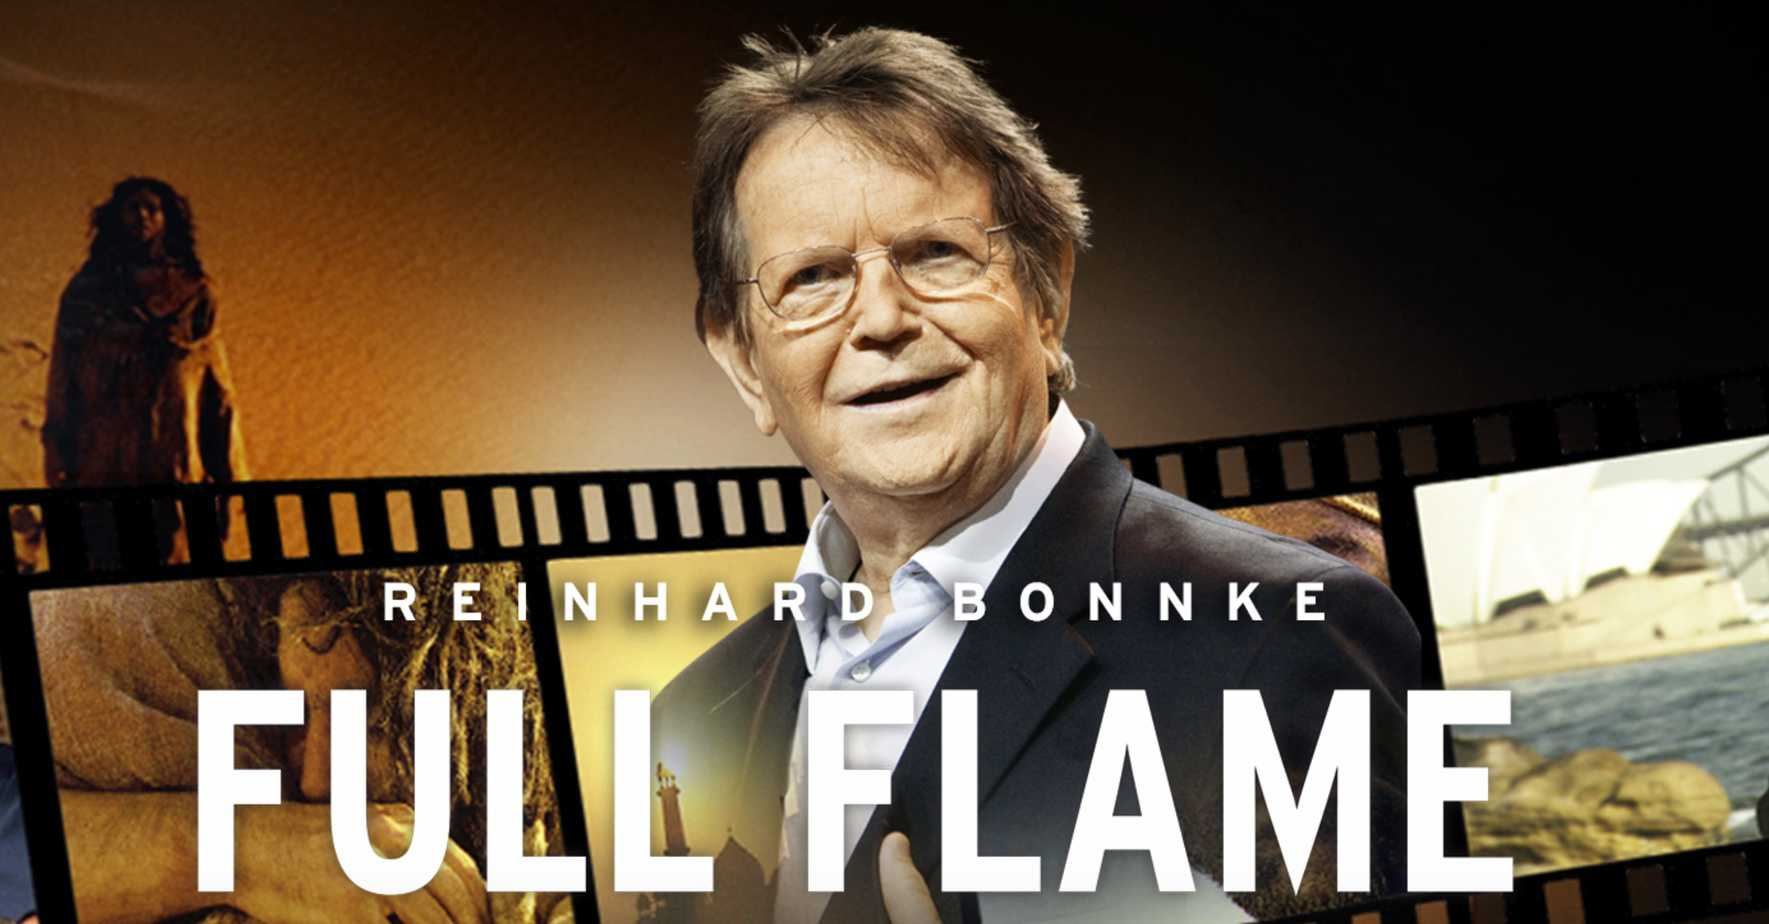 Get free access to Full Flame – 8 films that ignite a passion for evangelism